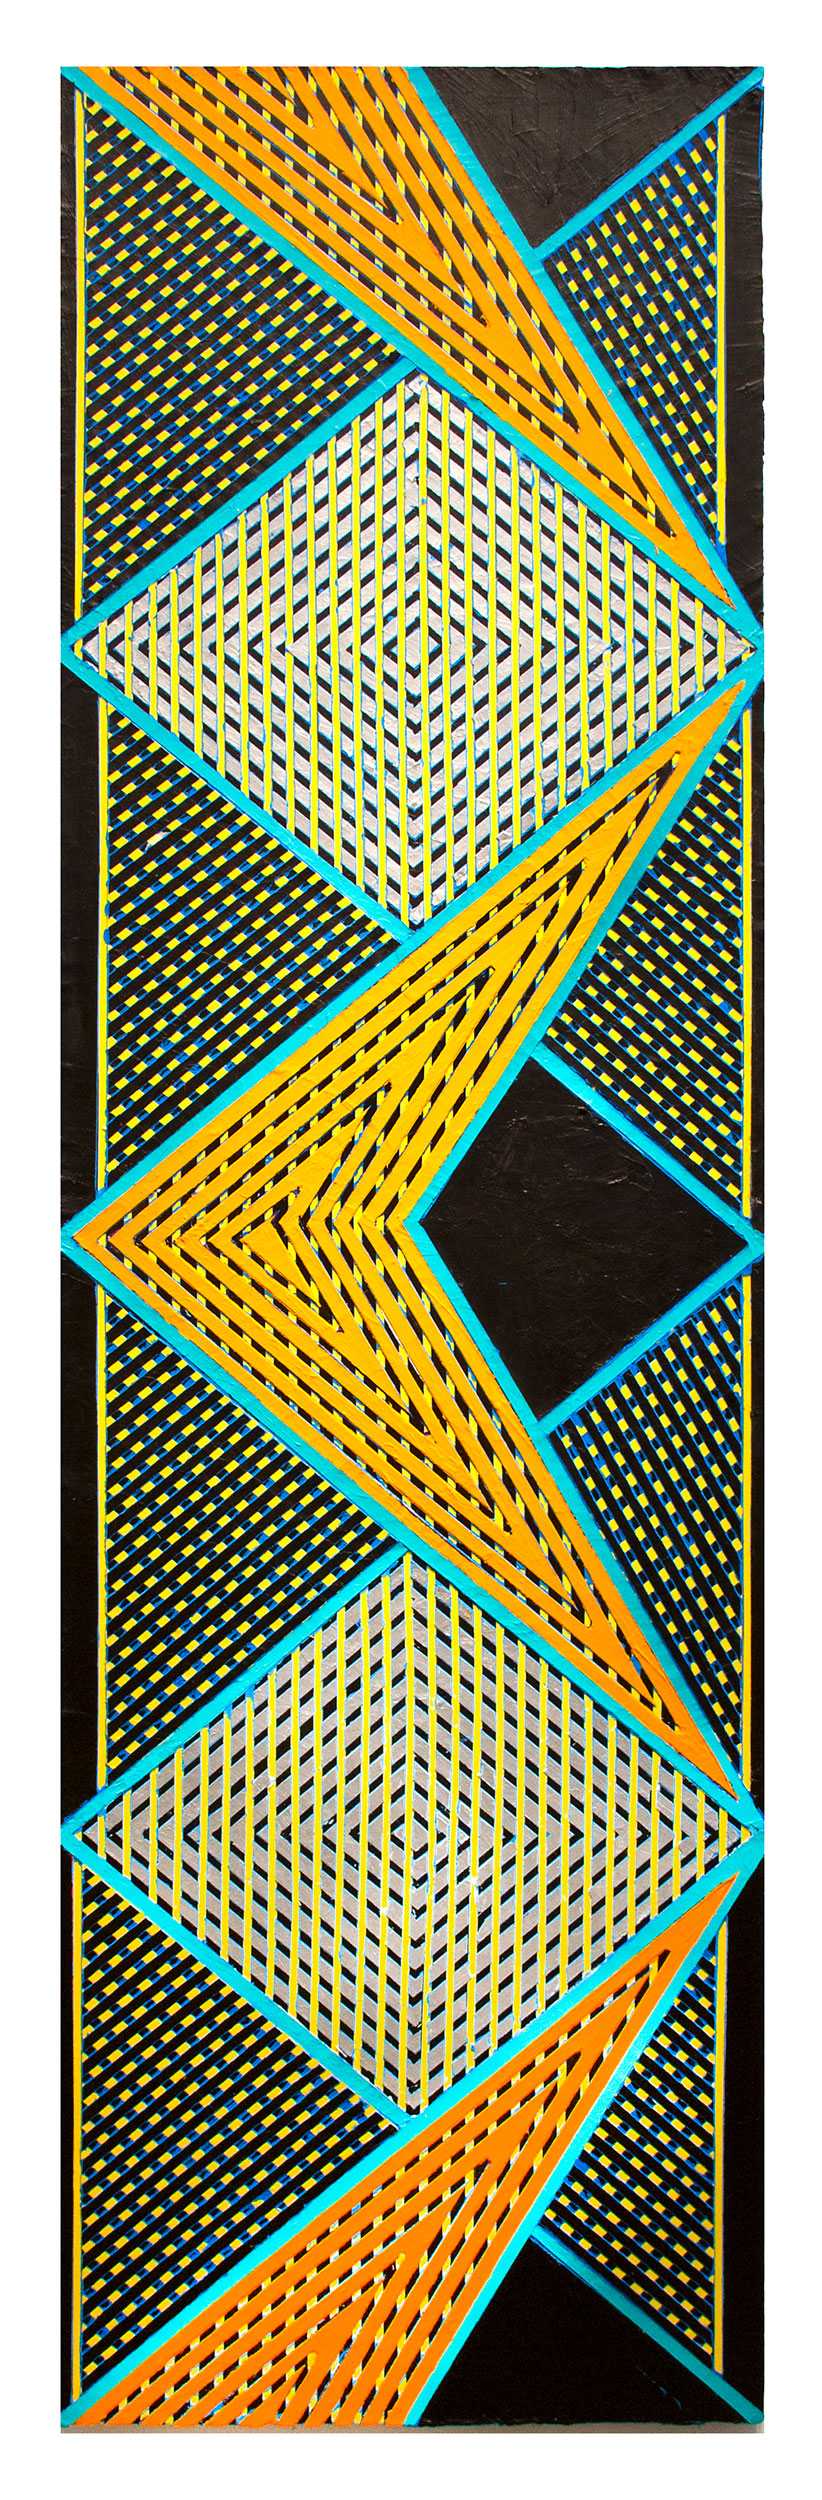 "2017          ""Zig-Zag w. Orange Chevron & Silver Diamonds""  Acrylic on Canvas 84H x 24W"